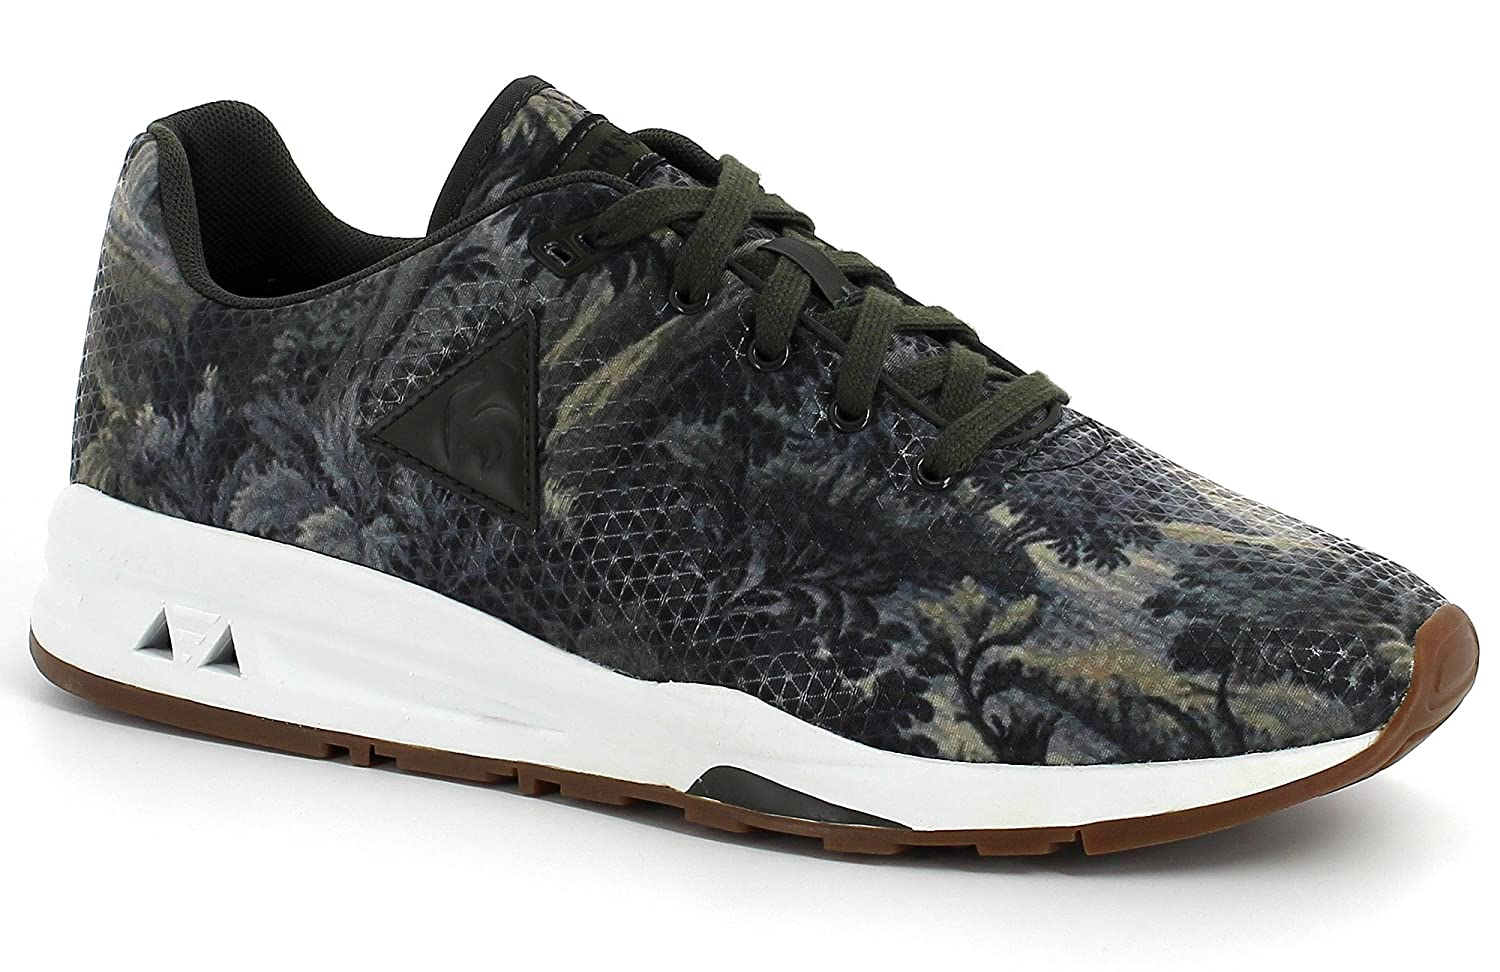 Le Coq Sportif Schuhe LCS R950 Tapisserie All Over